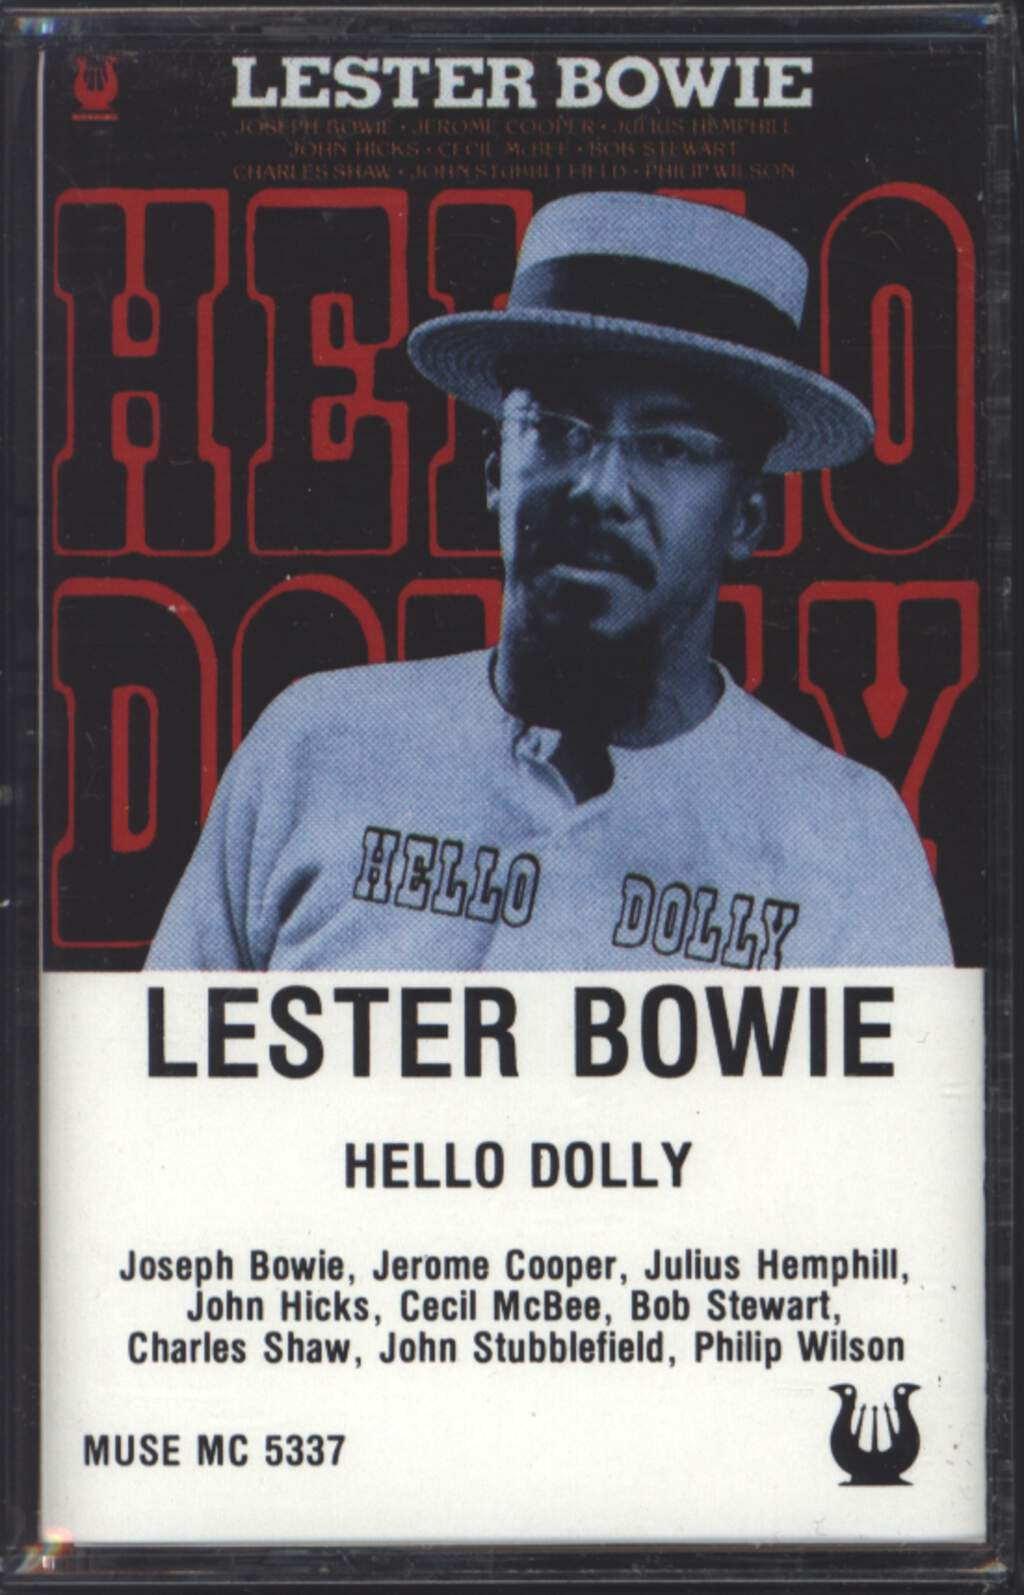 Lester Bowie: Hello Dolly, Compact Cassette